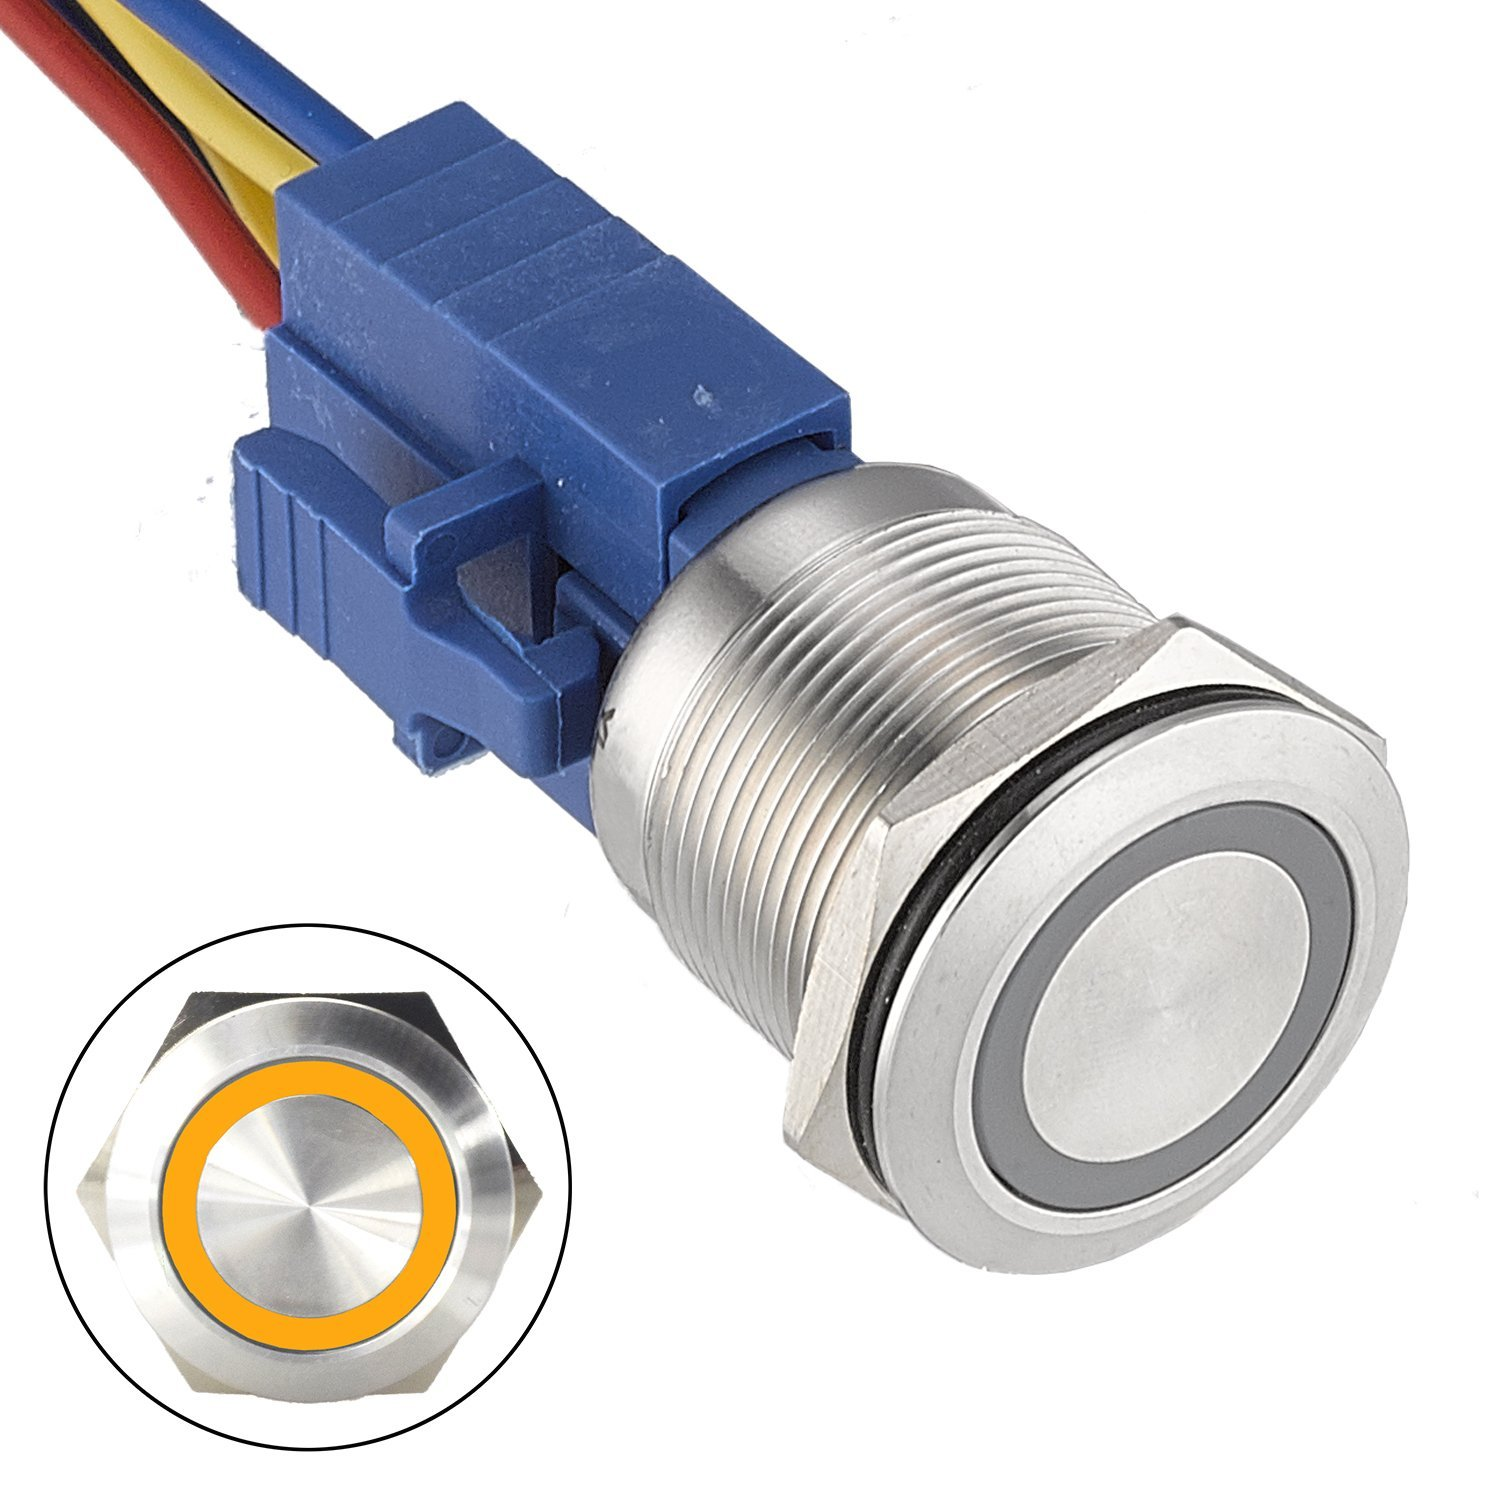 API-ELE [3 year warranty] 22mm Latching Push Button Switch 12V DC Angel Eye LED Waterproof Stainless Steel Round Metal 1NO1NC Self-locking for 7/8'' Mounting hole (Yellow)